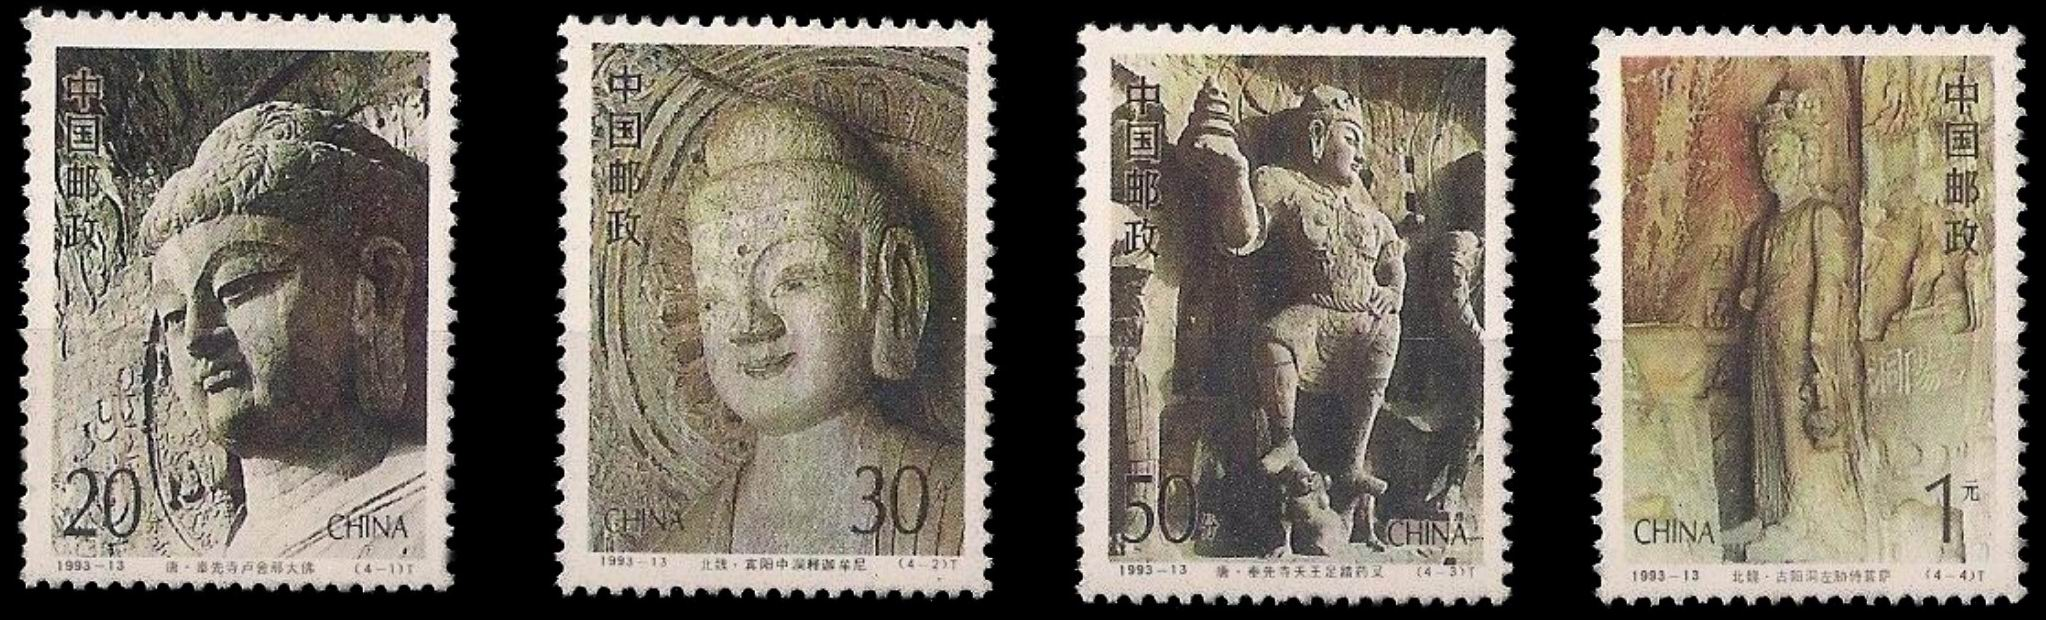 China 1993 Stamps Longmen Grottoes Buddha MNH